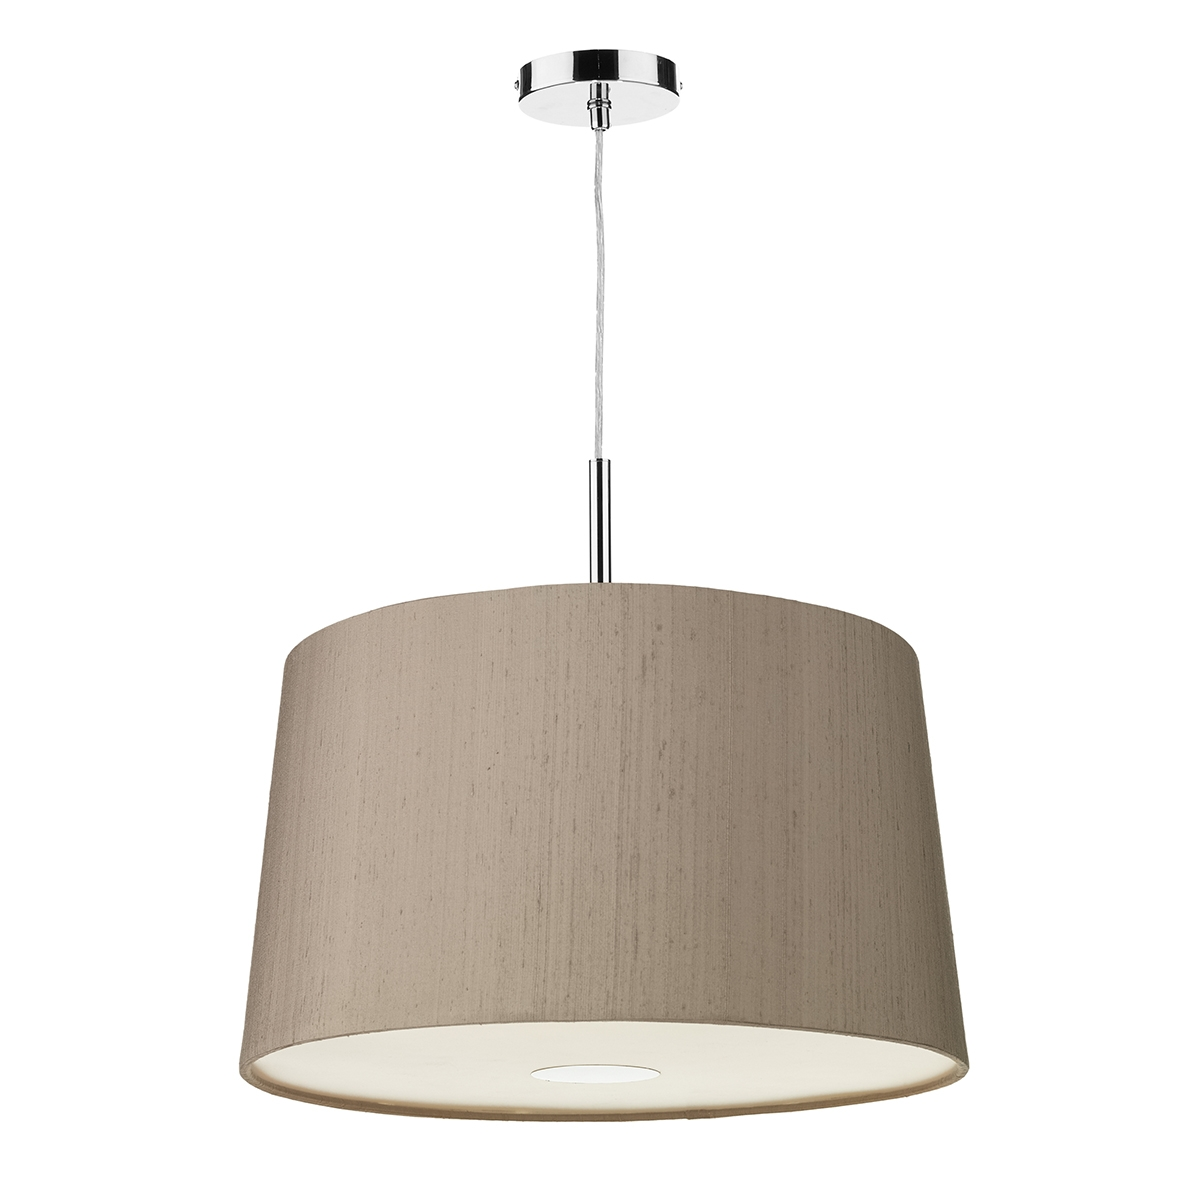 Naseby 50cm 3 Light Pendant